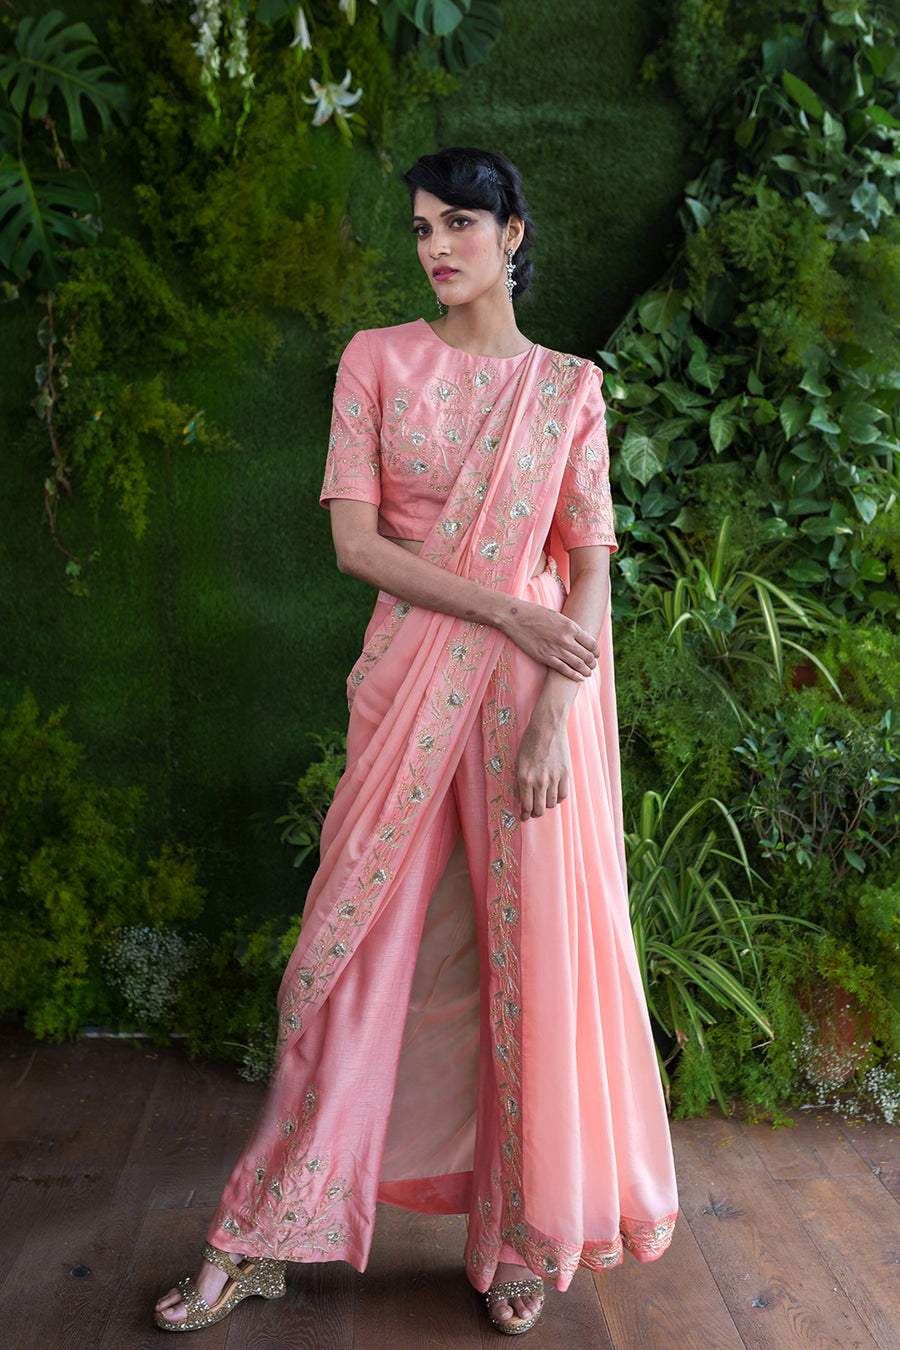 Salmon Pink Blouse and Pants with a Detached Saree